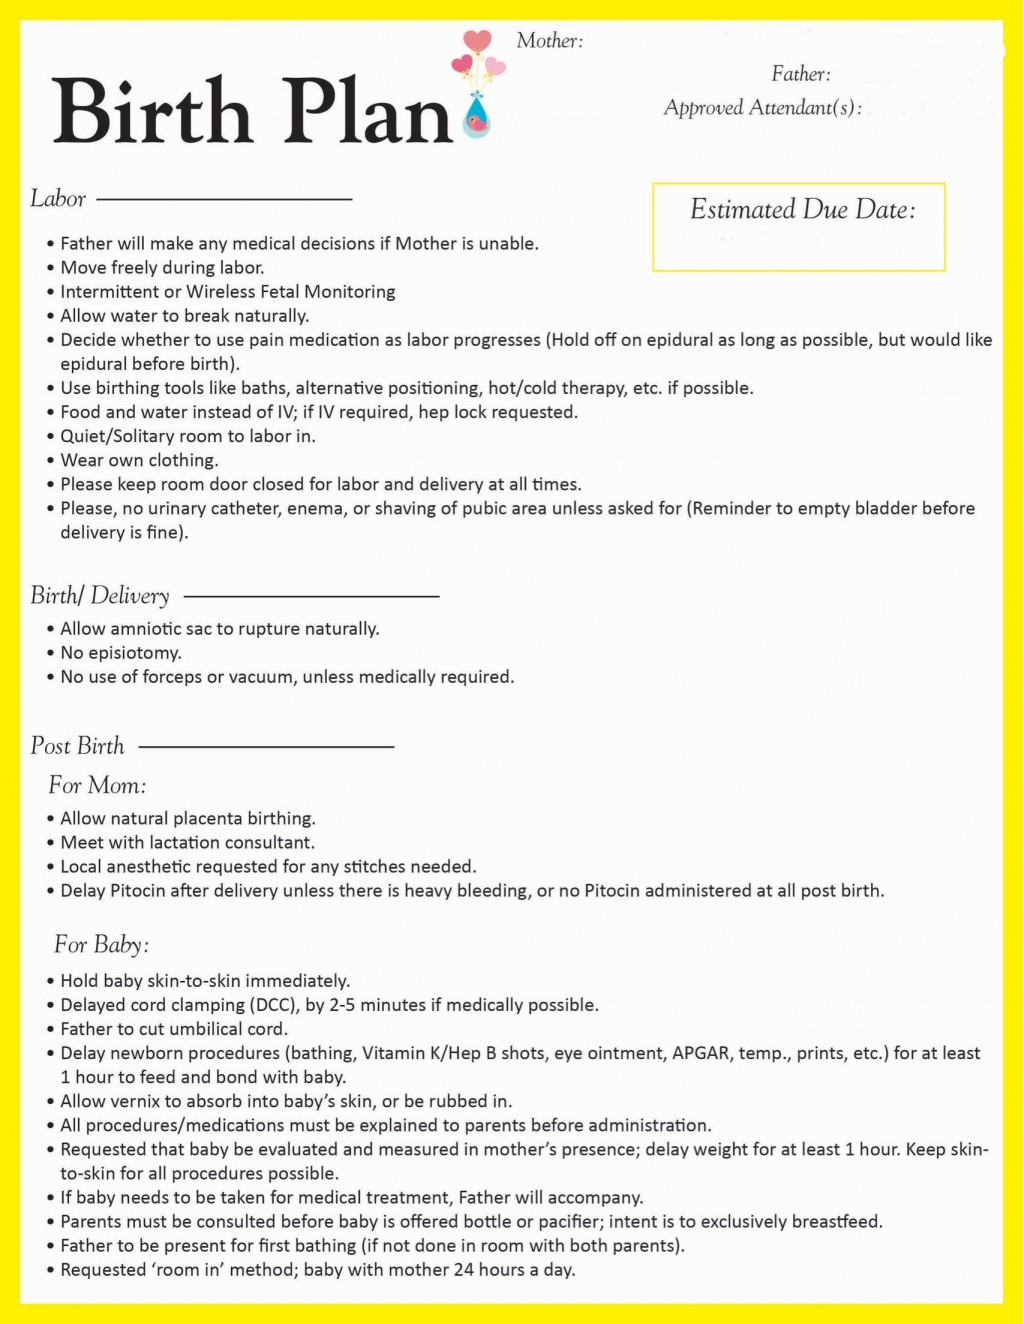 003 Fantastic One Page Birth Plan Template Sample  Simple PdfLarge